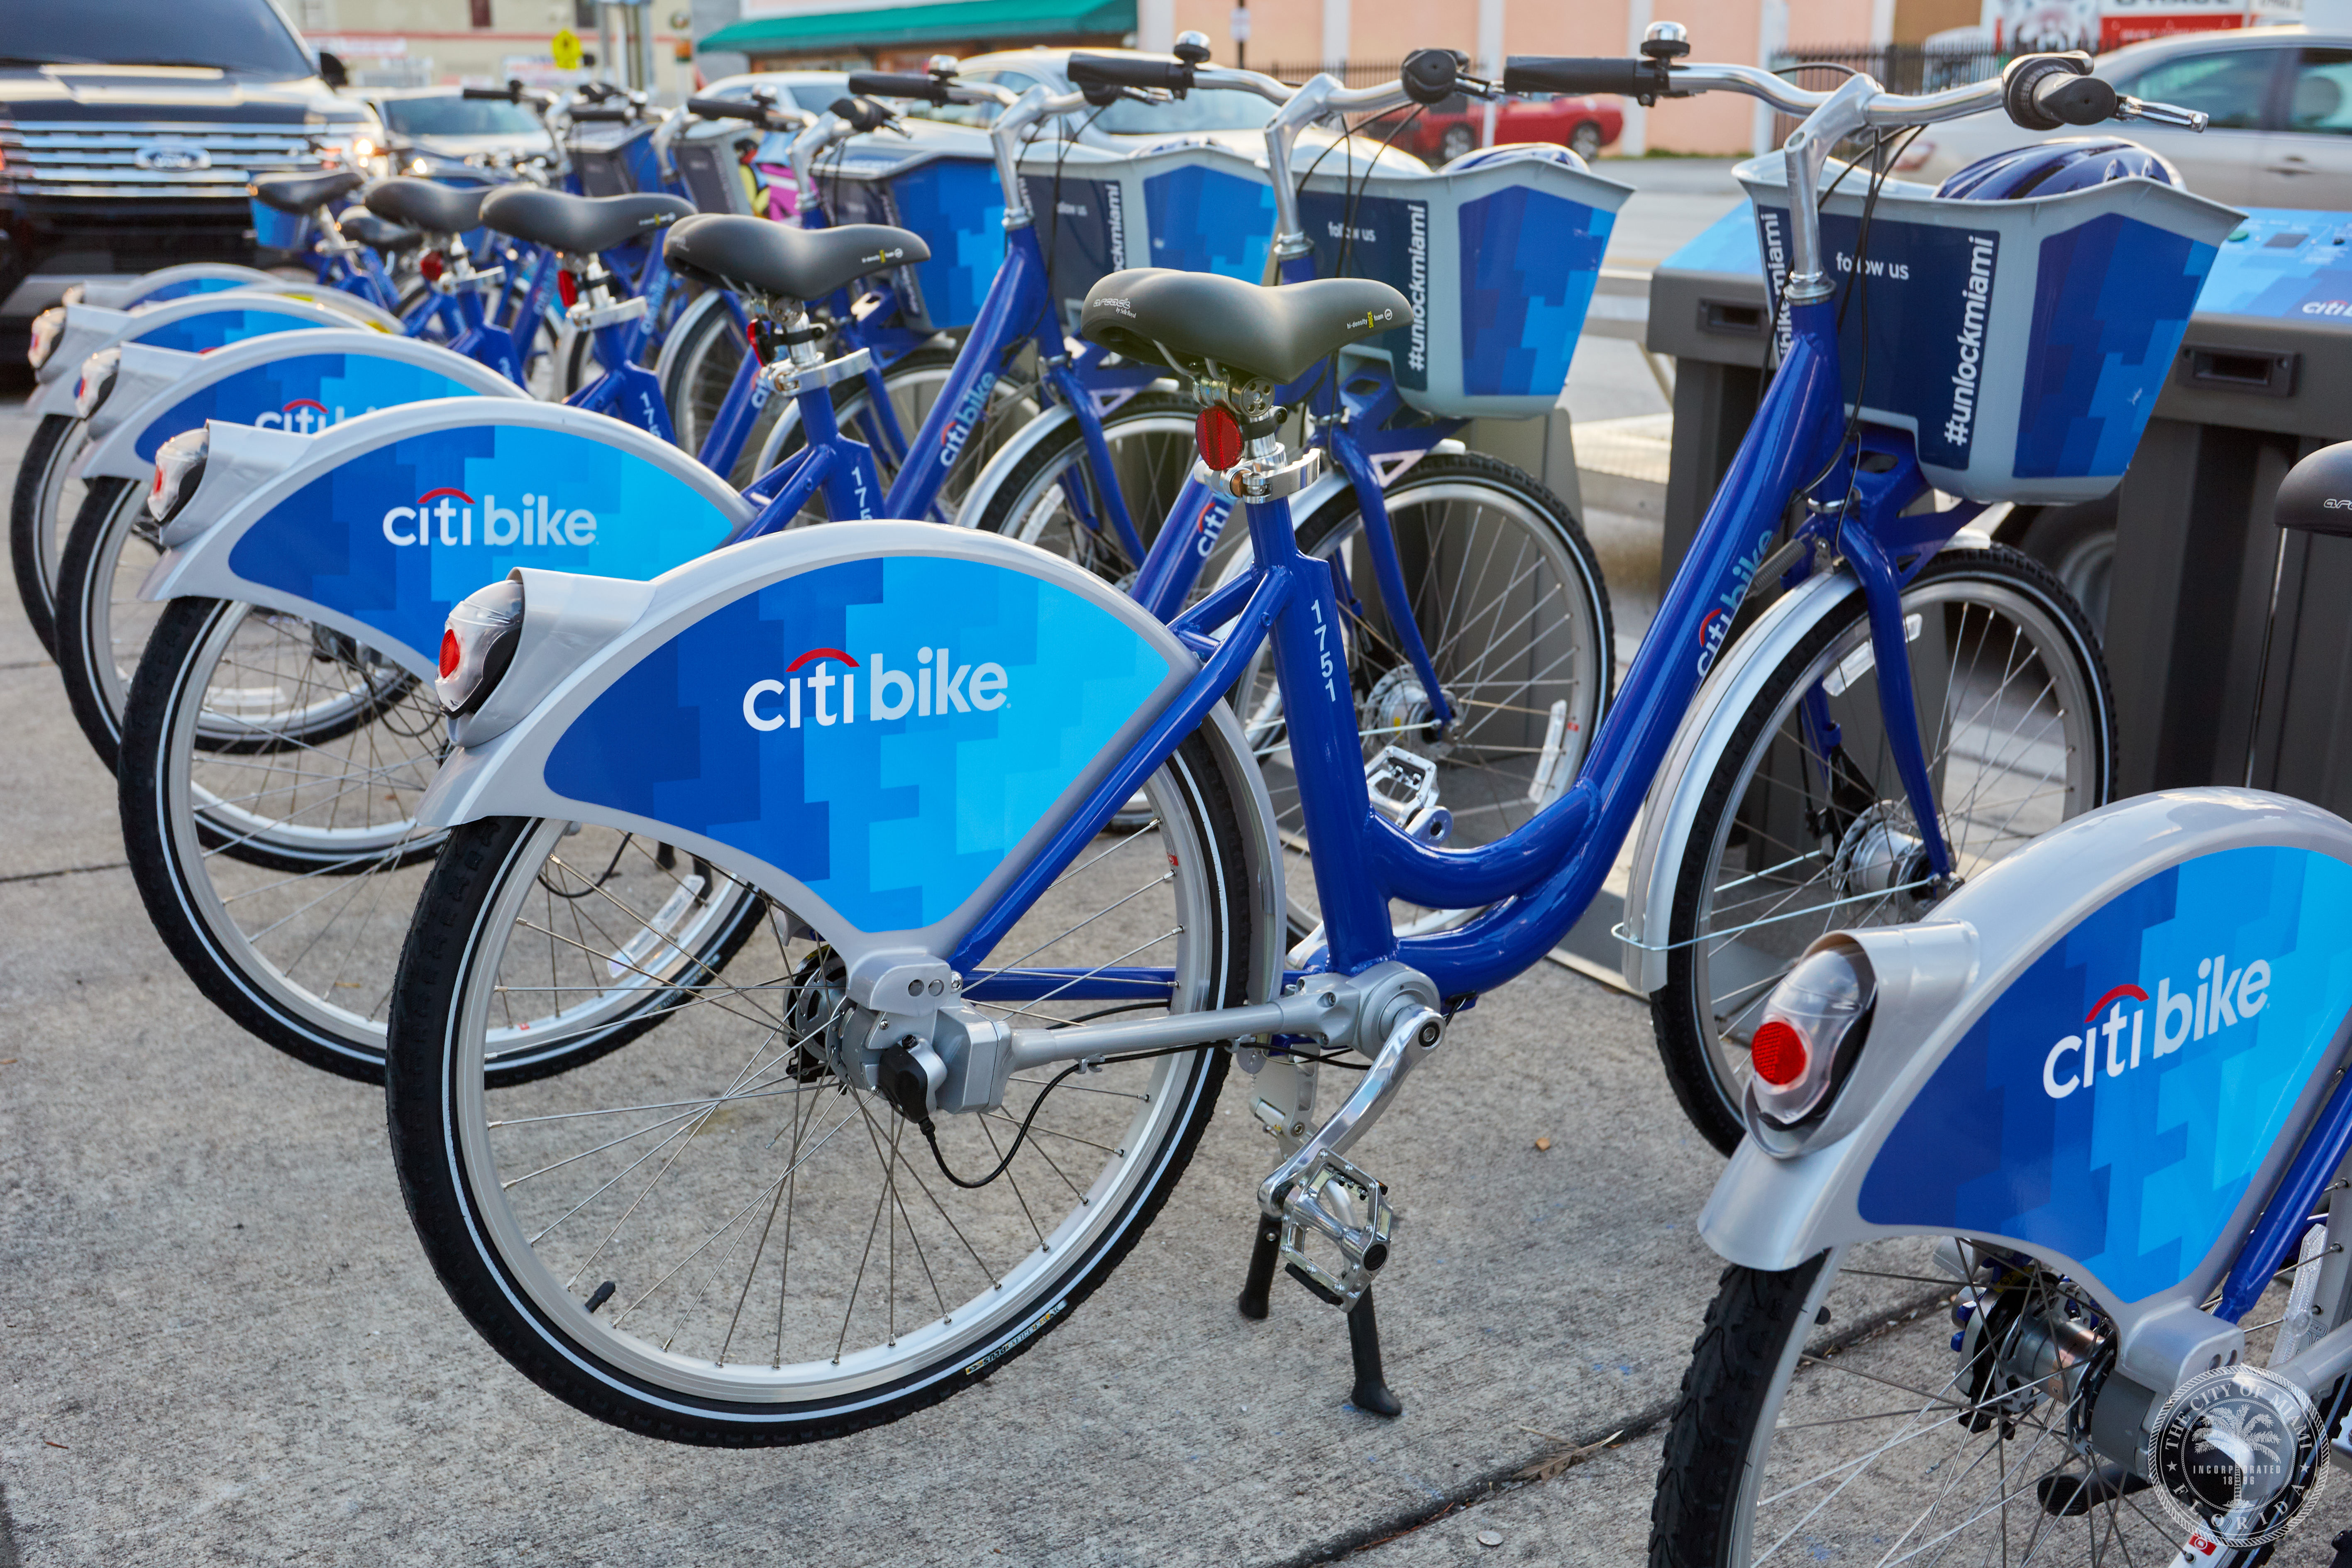 rack of blue citibikes